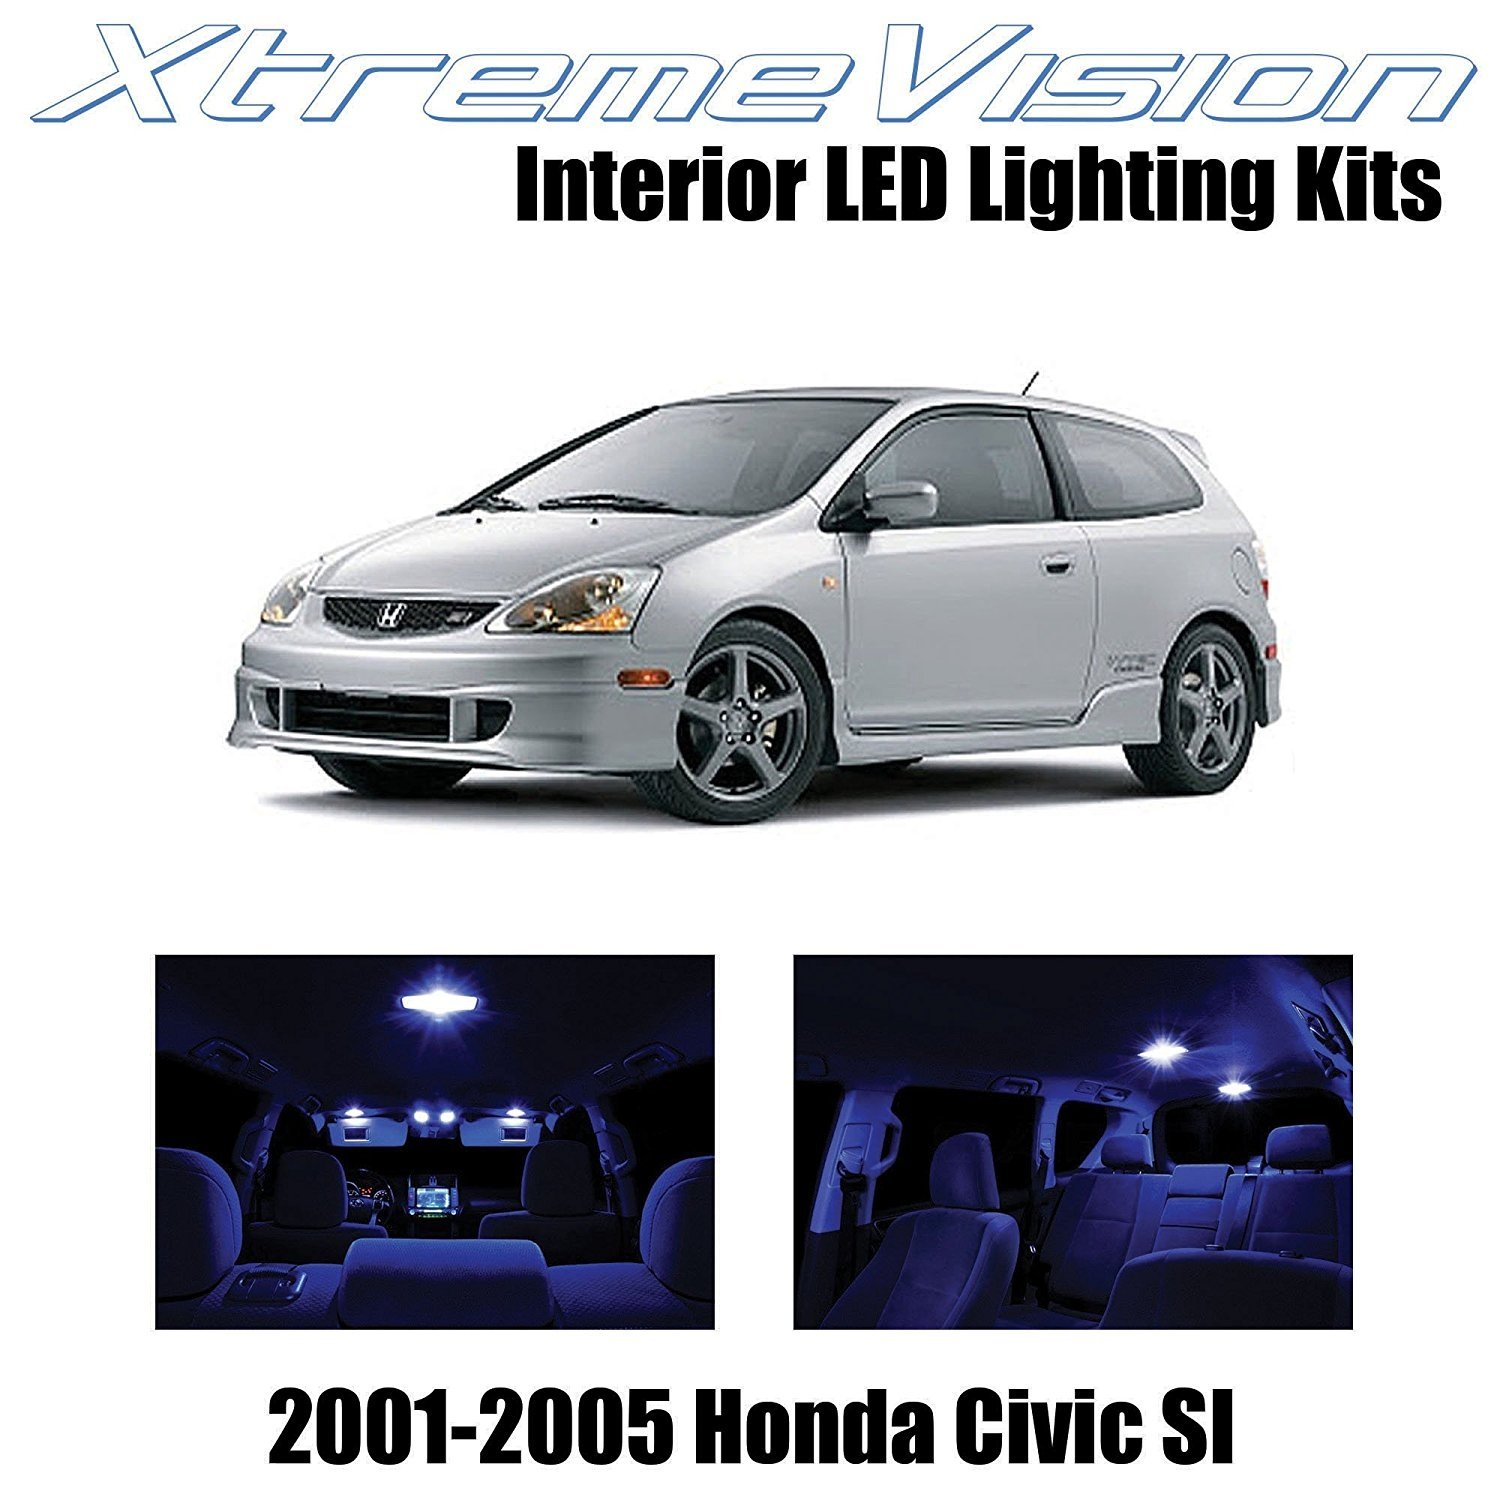 XtremeVision LED for Honda Civic SI Only 2001-2005 (7 Pieces) Pure White Premium Interior LED Kit Package + Installation Tool